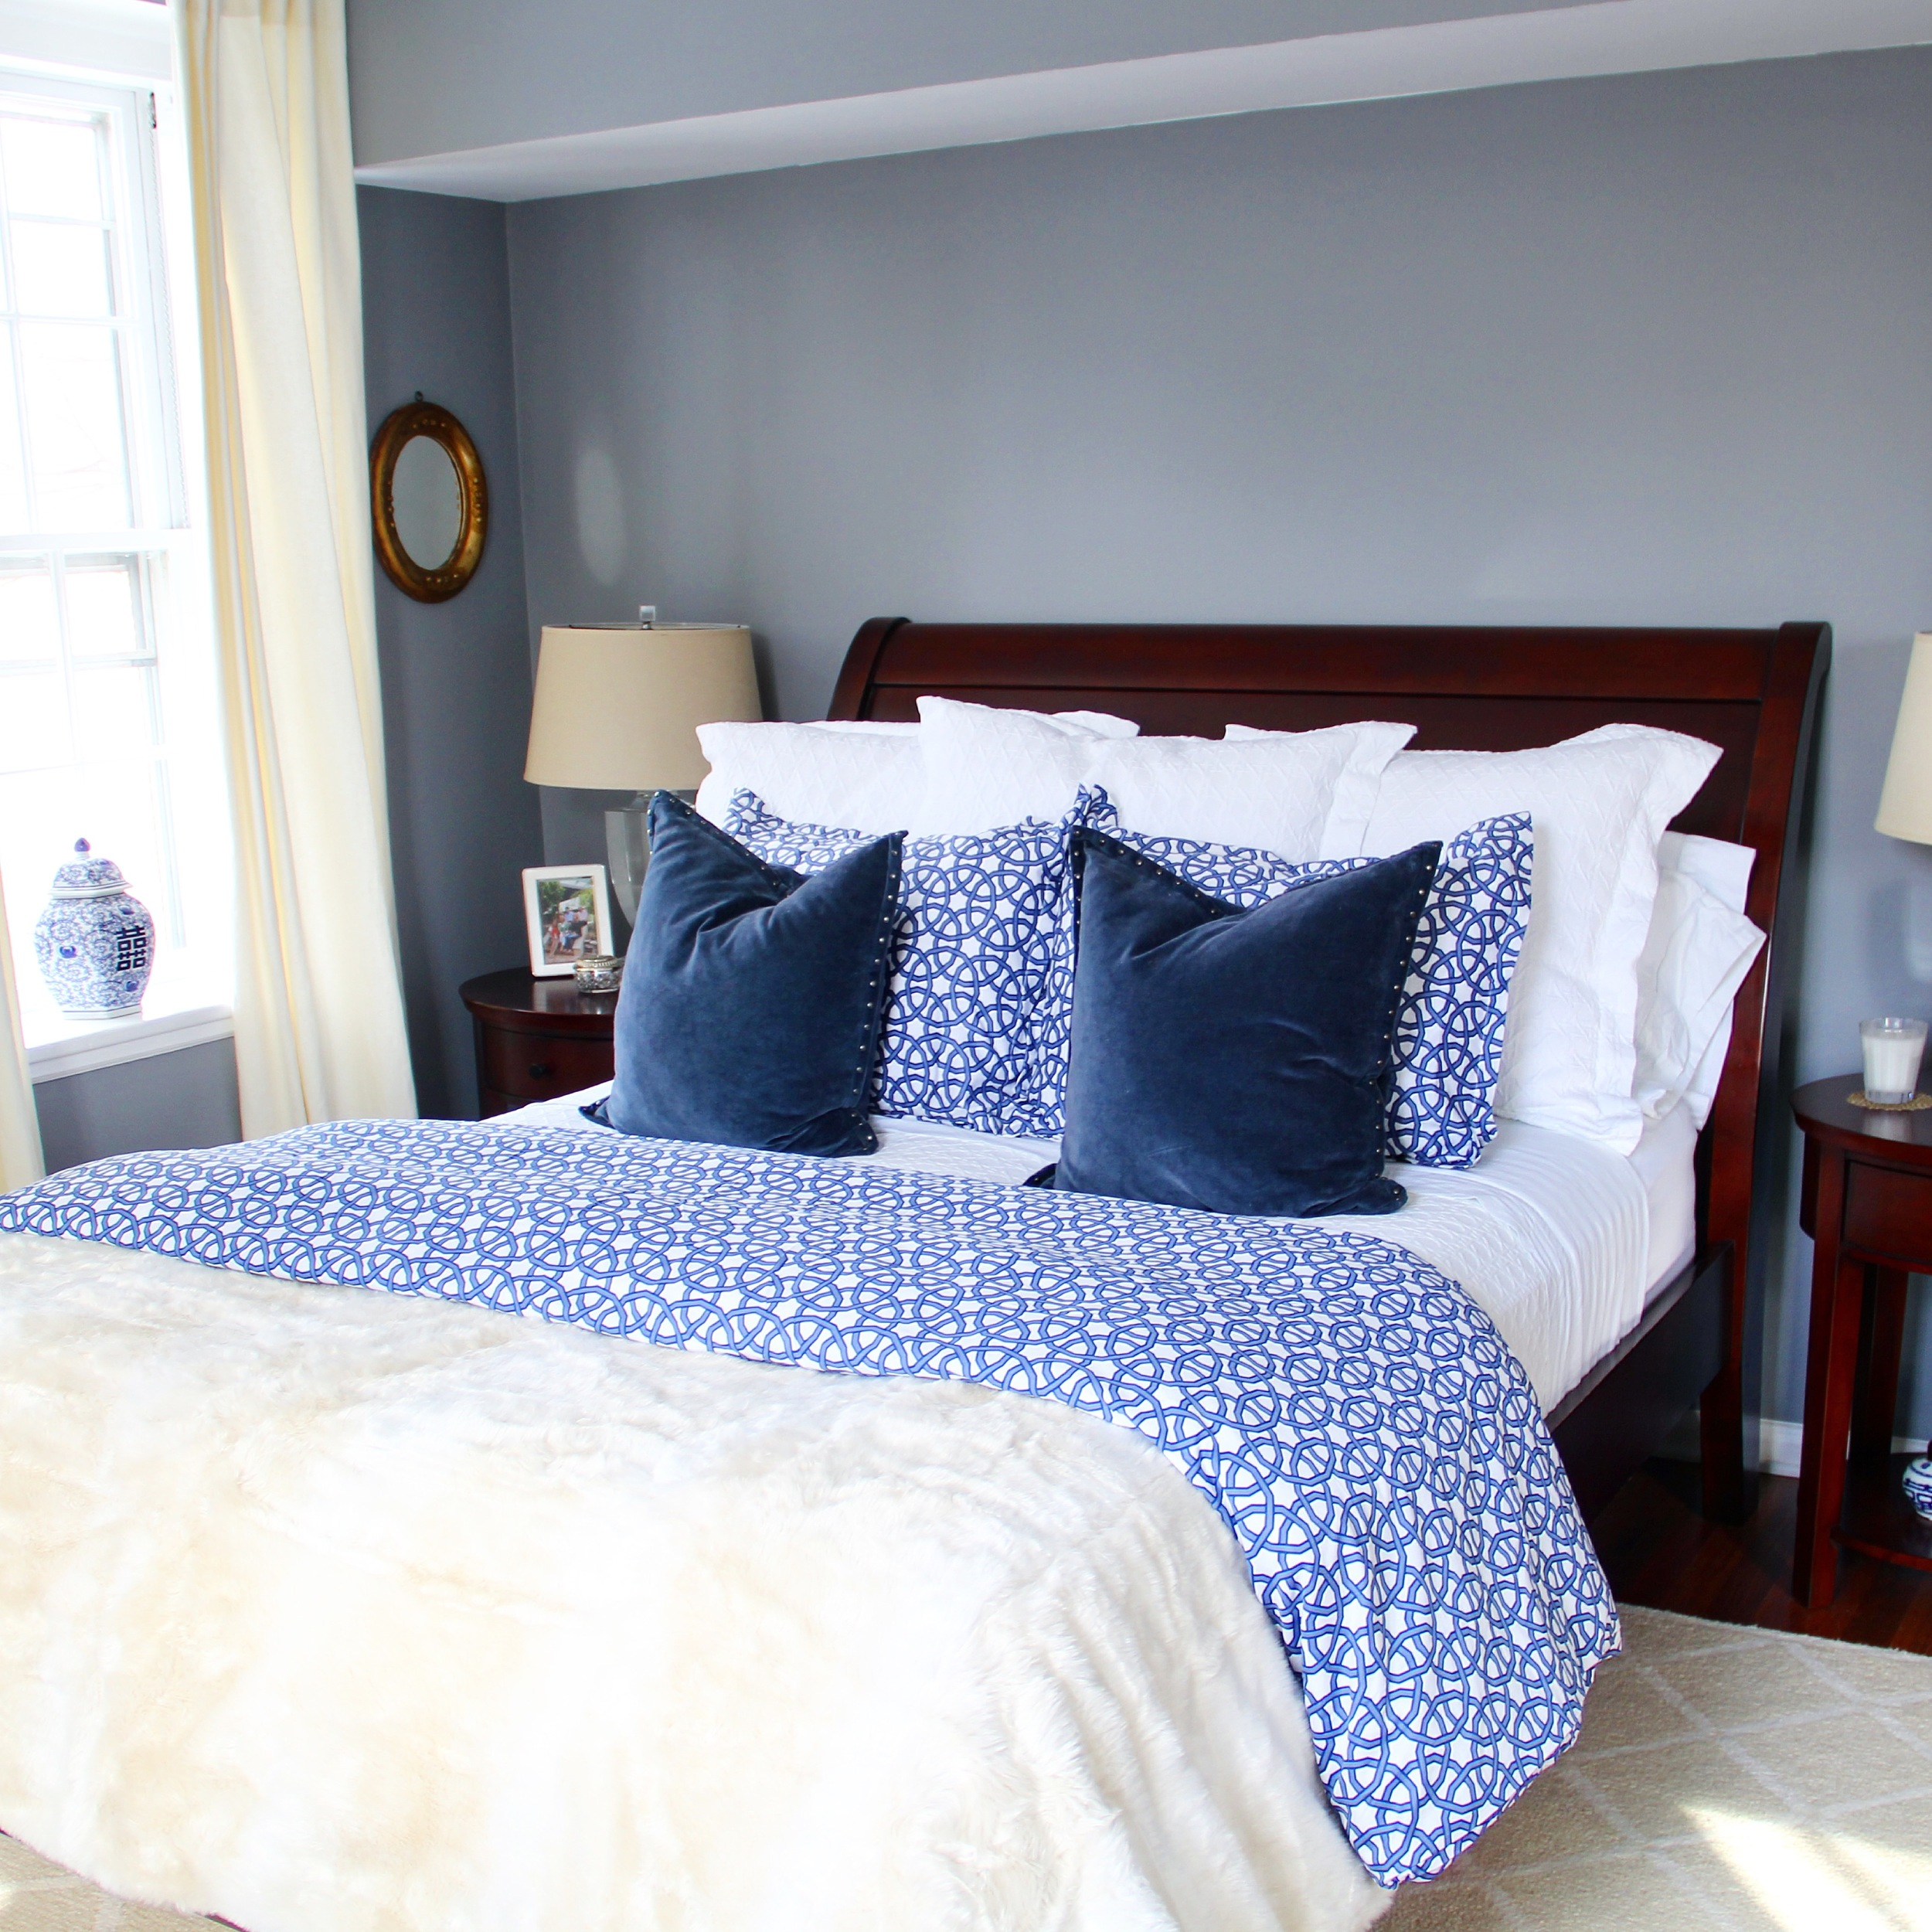 Crate and Barrel Union Square Duvet Cover and Shams.JPG